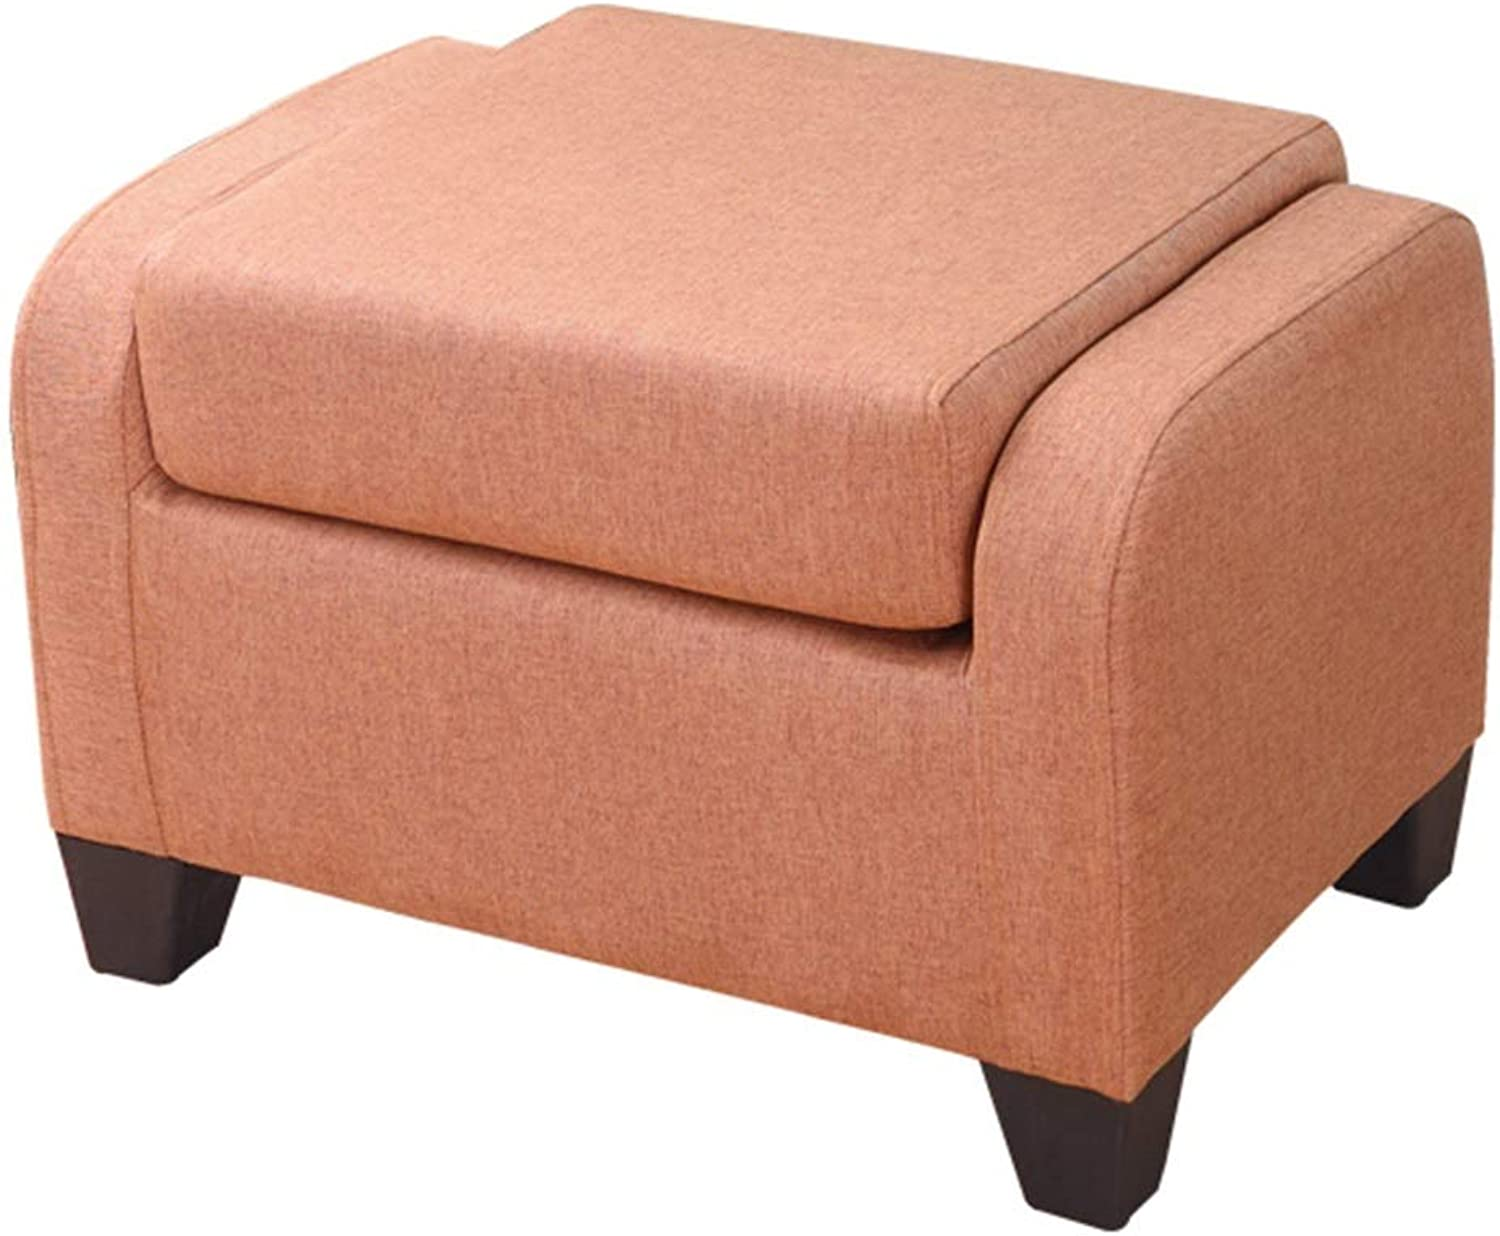 LSXIAO Pouffes And Footstools Folding Design Save Space Linen Cloth Refreshing Breathable, 5 colors (color   orange, Size   58x40.5x37.5cm)